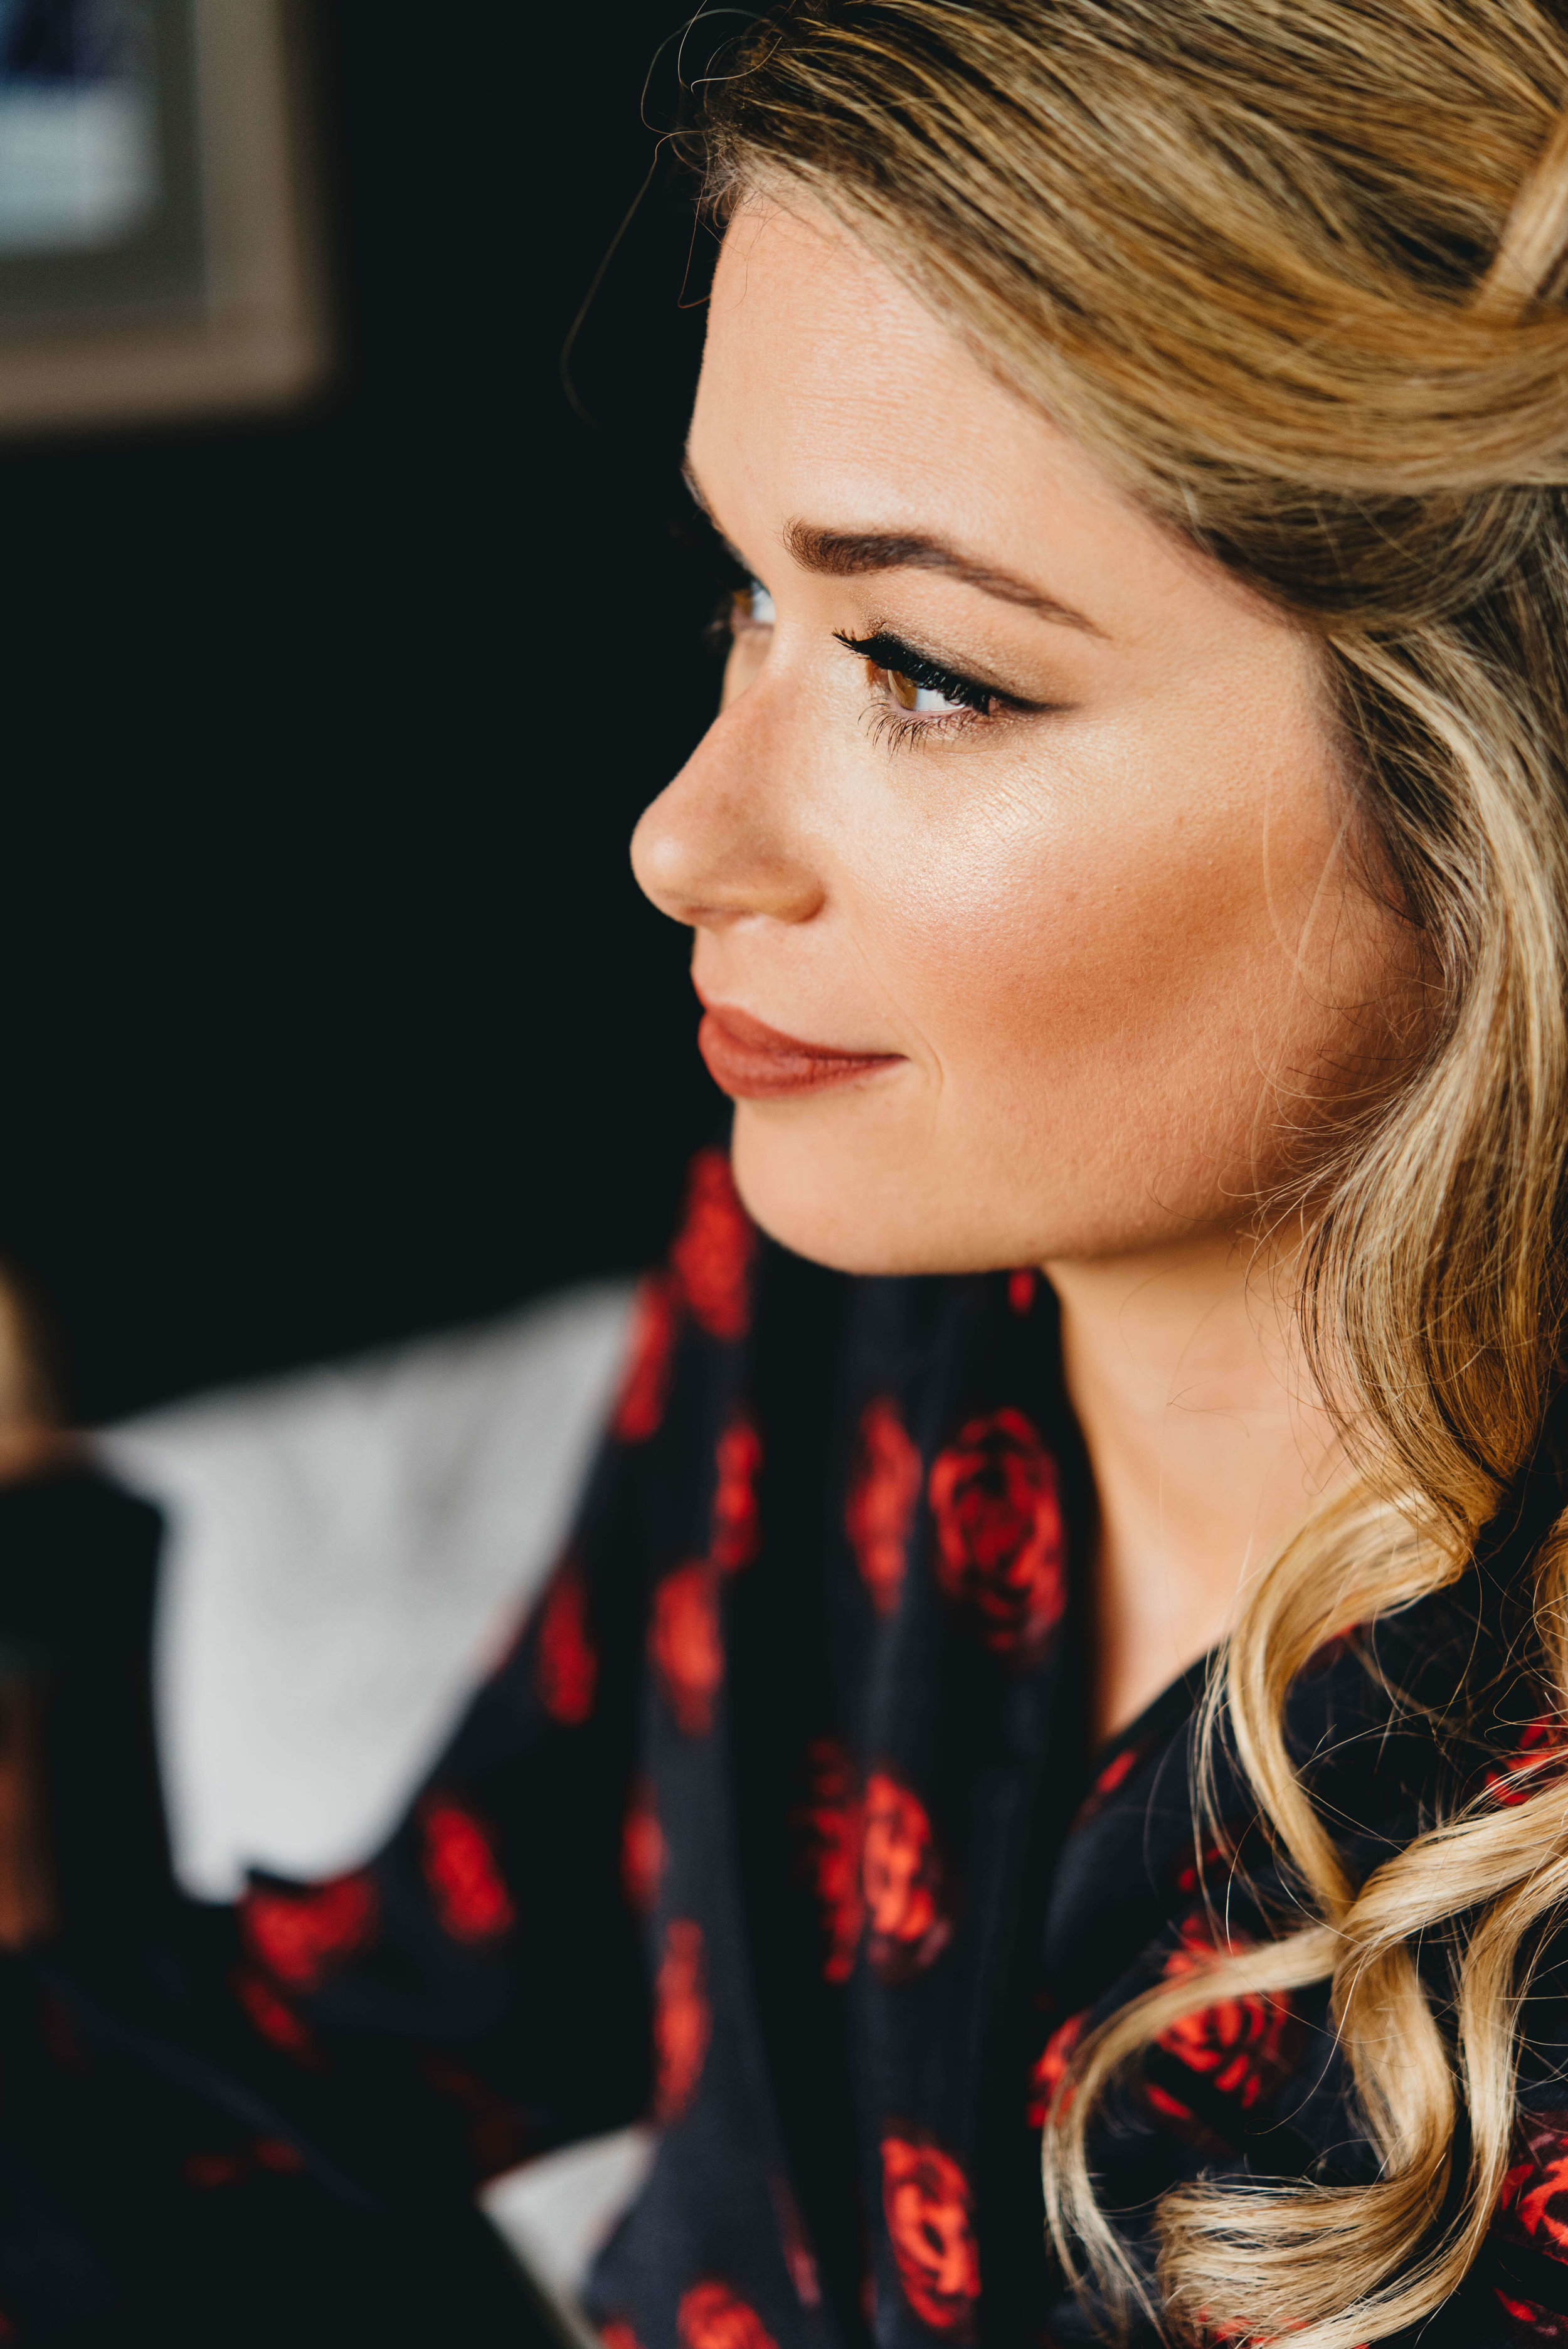 Roy Son Photography | Raspberry Island and Octo Fish bar | Minneapolis wedding planner Sixpence Events | bridal getting ready robe - navy with red, natural makeup with a red muted lip, perfect brows